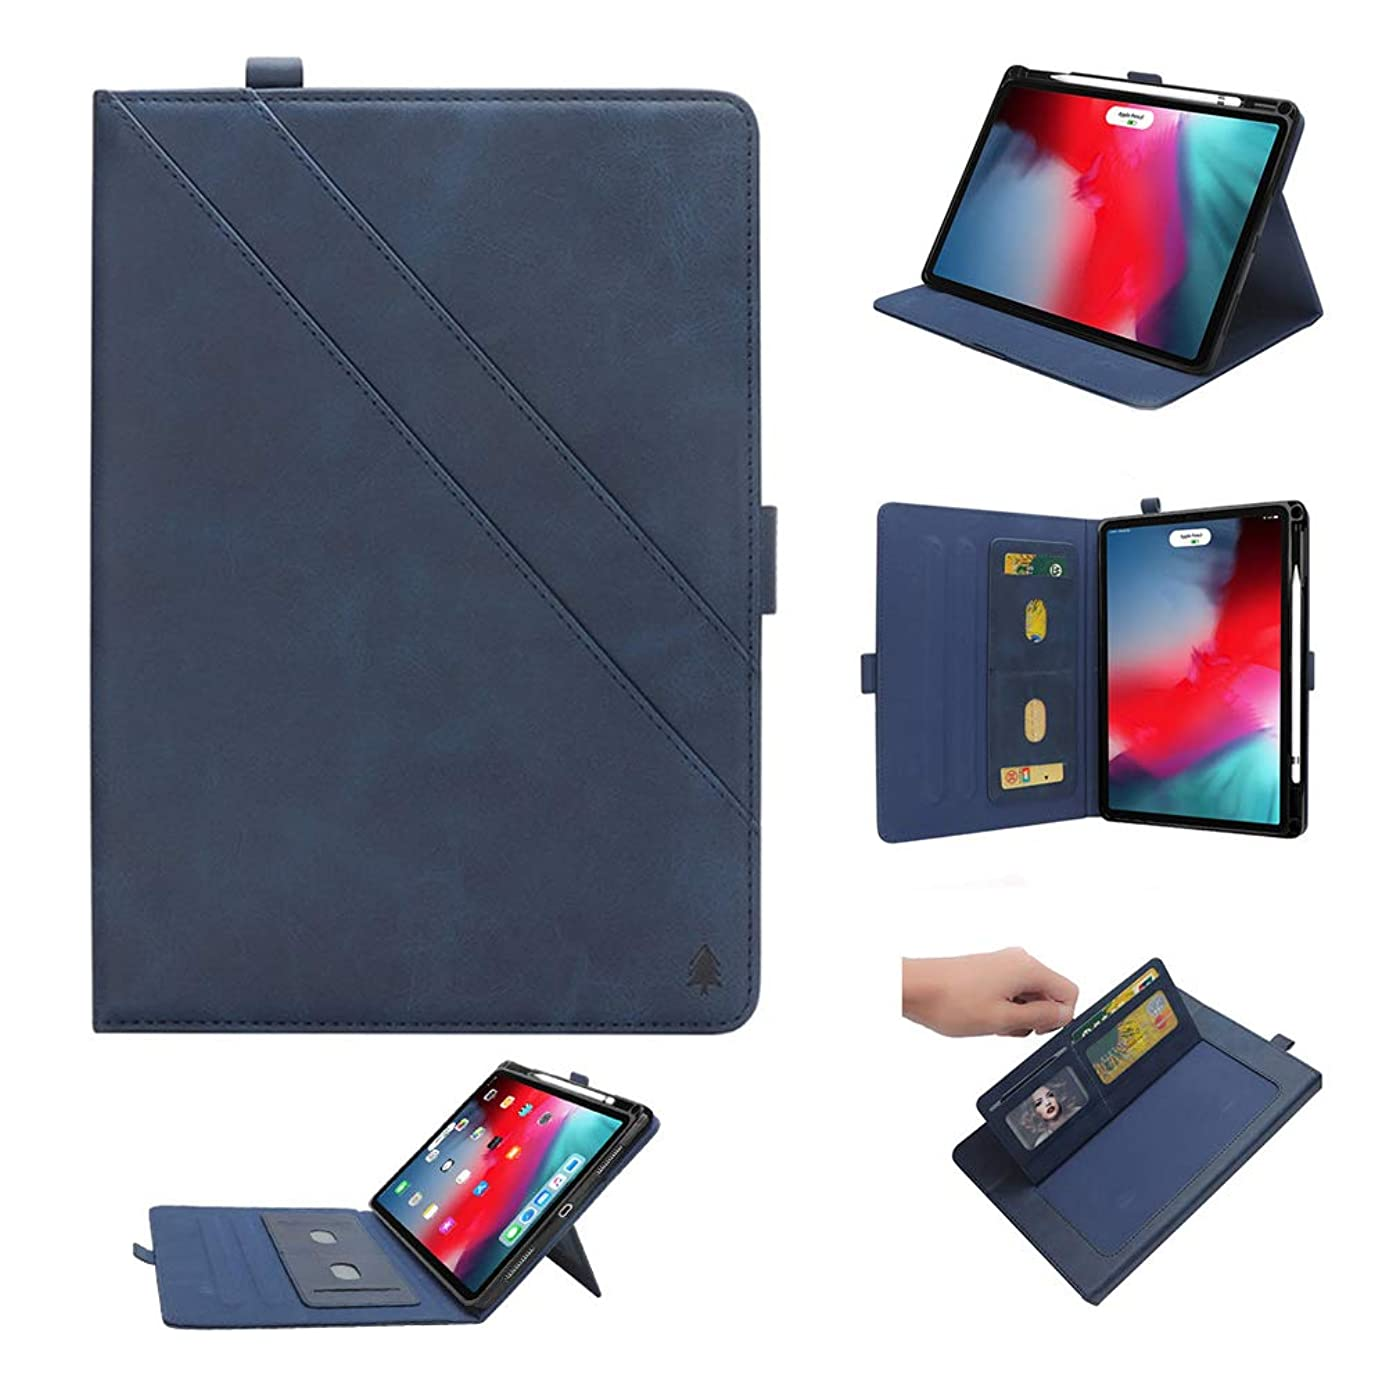 "iPad 11"" Pro Case, YiMiky Book Cover Case Protective Folio Case PU Leather Stand Cover with Pencil Slot [Support Apple Pencil Charging] Smart Cover Case for 2018 iPad Pro 11 Inch - Dark Blue fuh2328694"